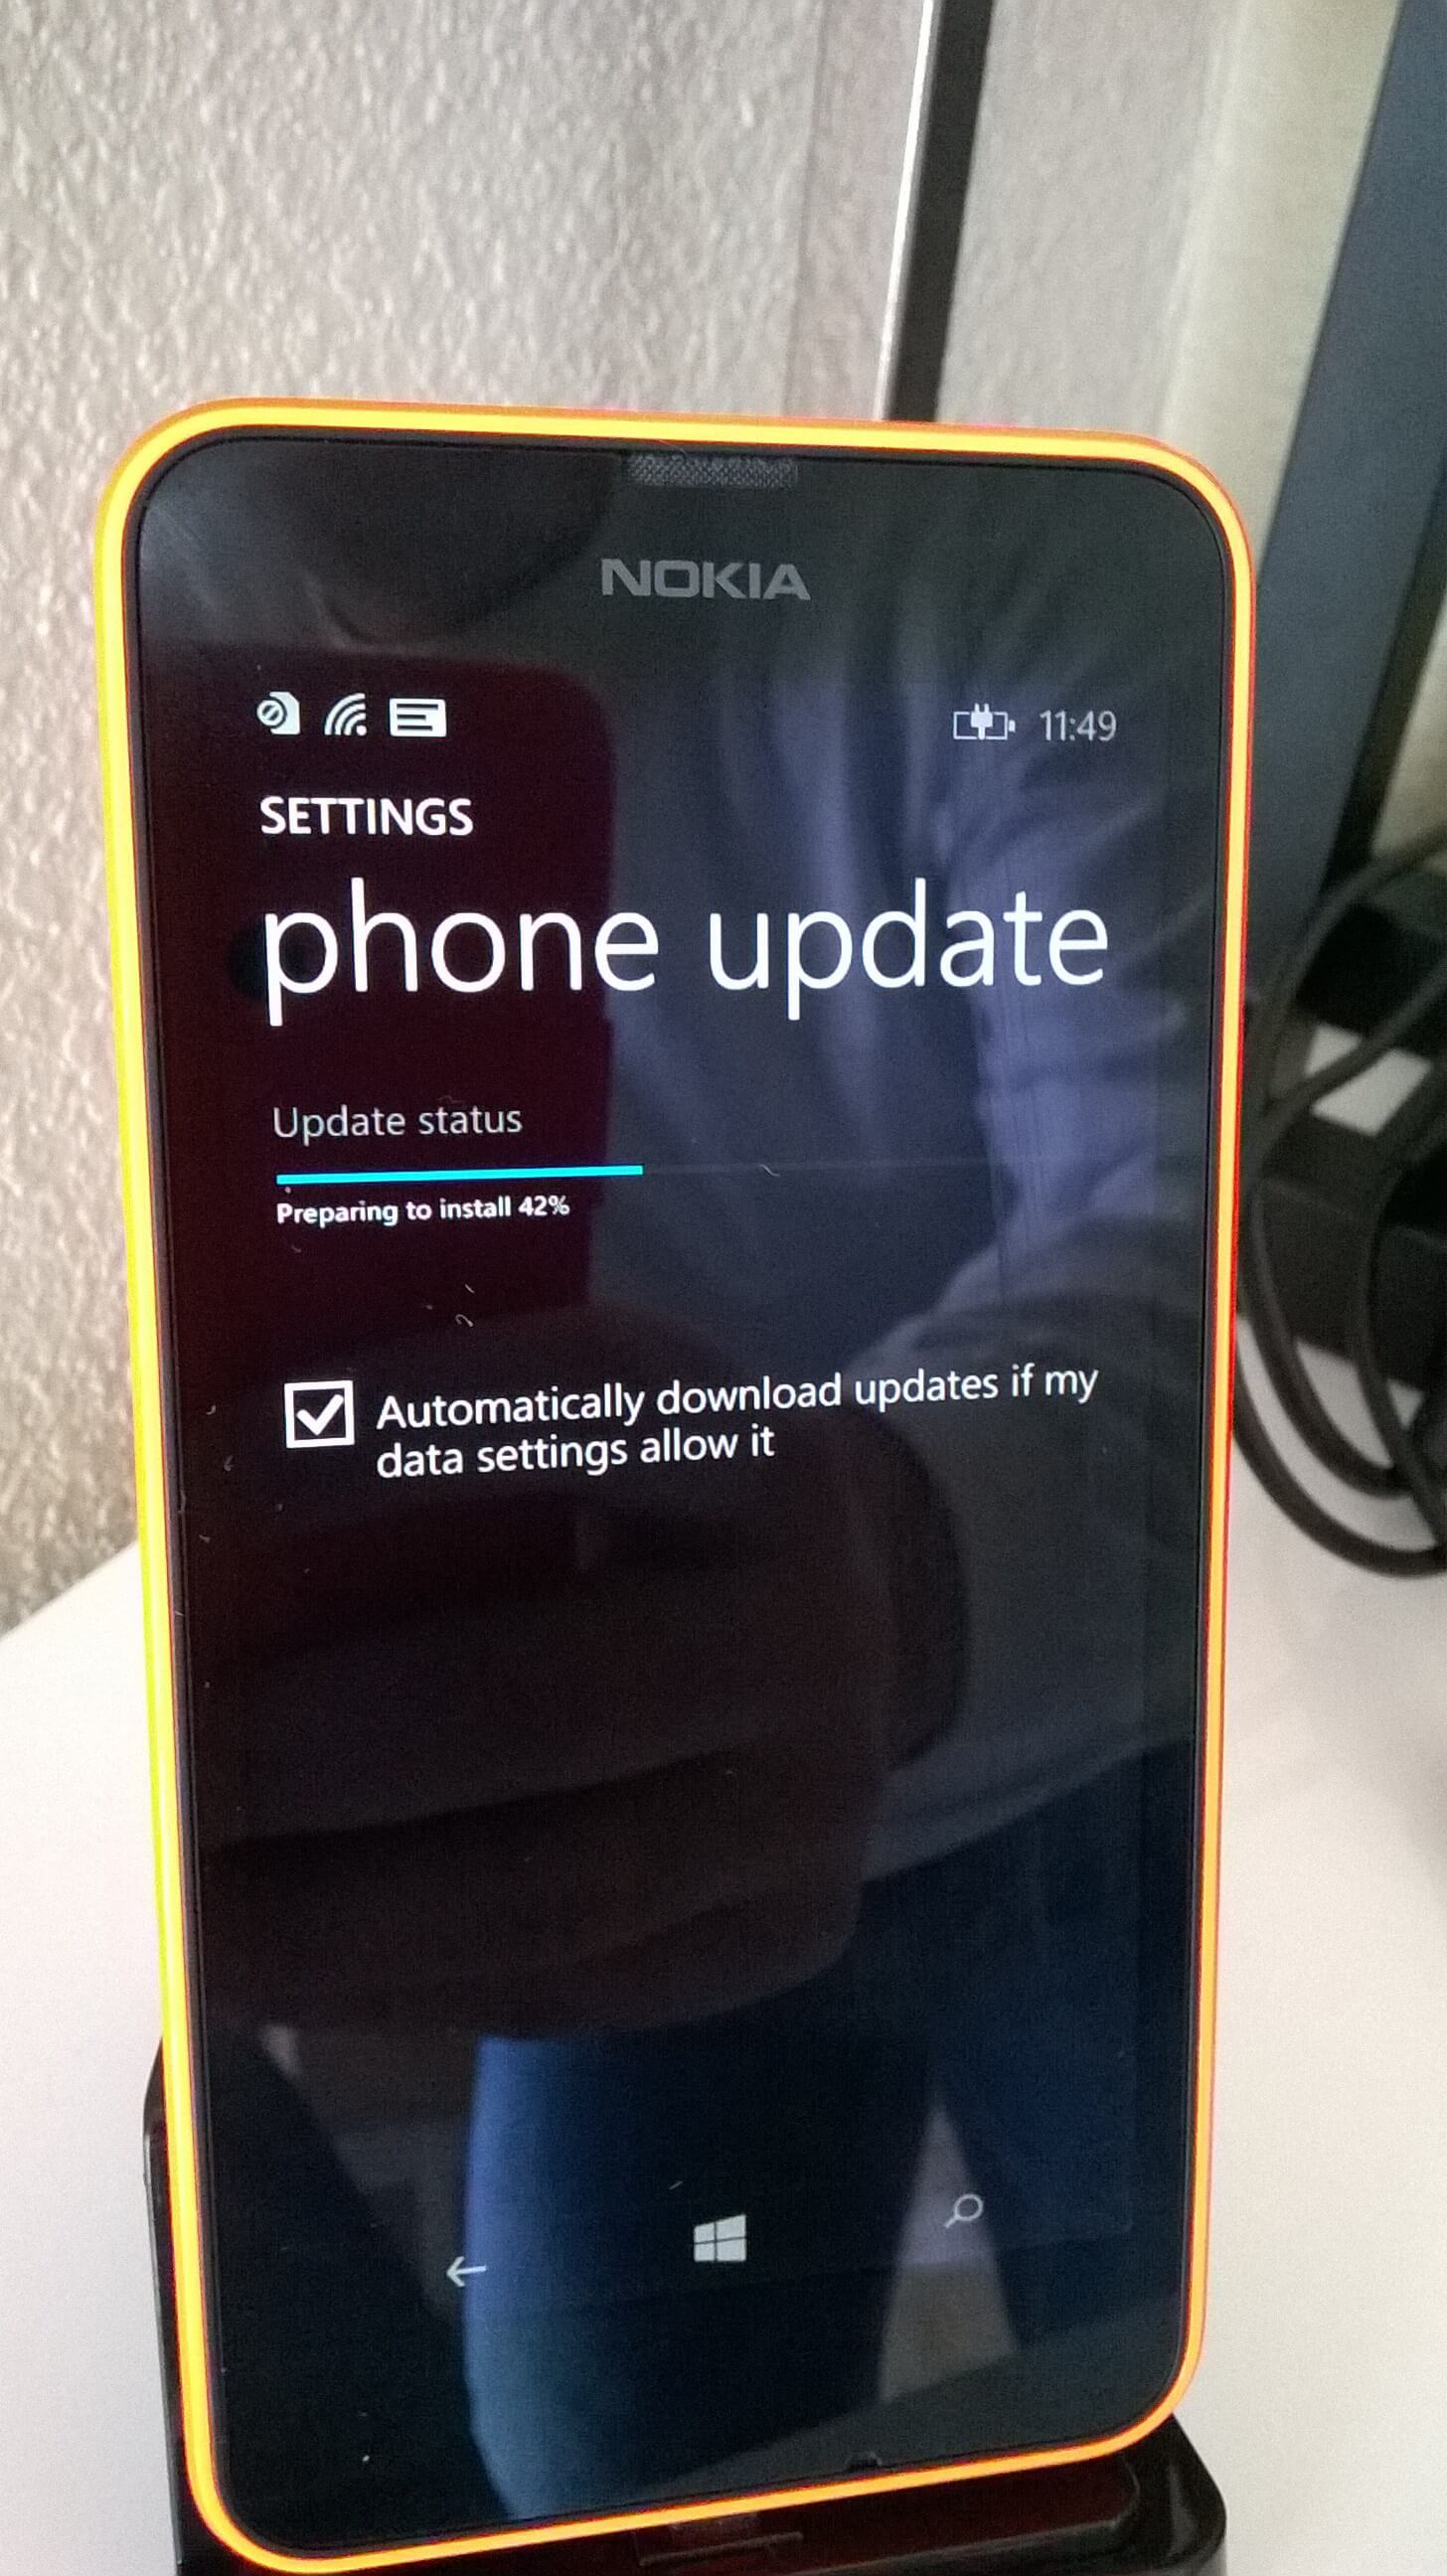 Upgrading to Windows 10 for Phones